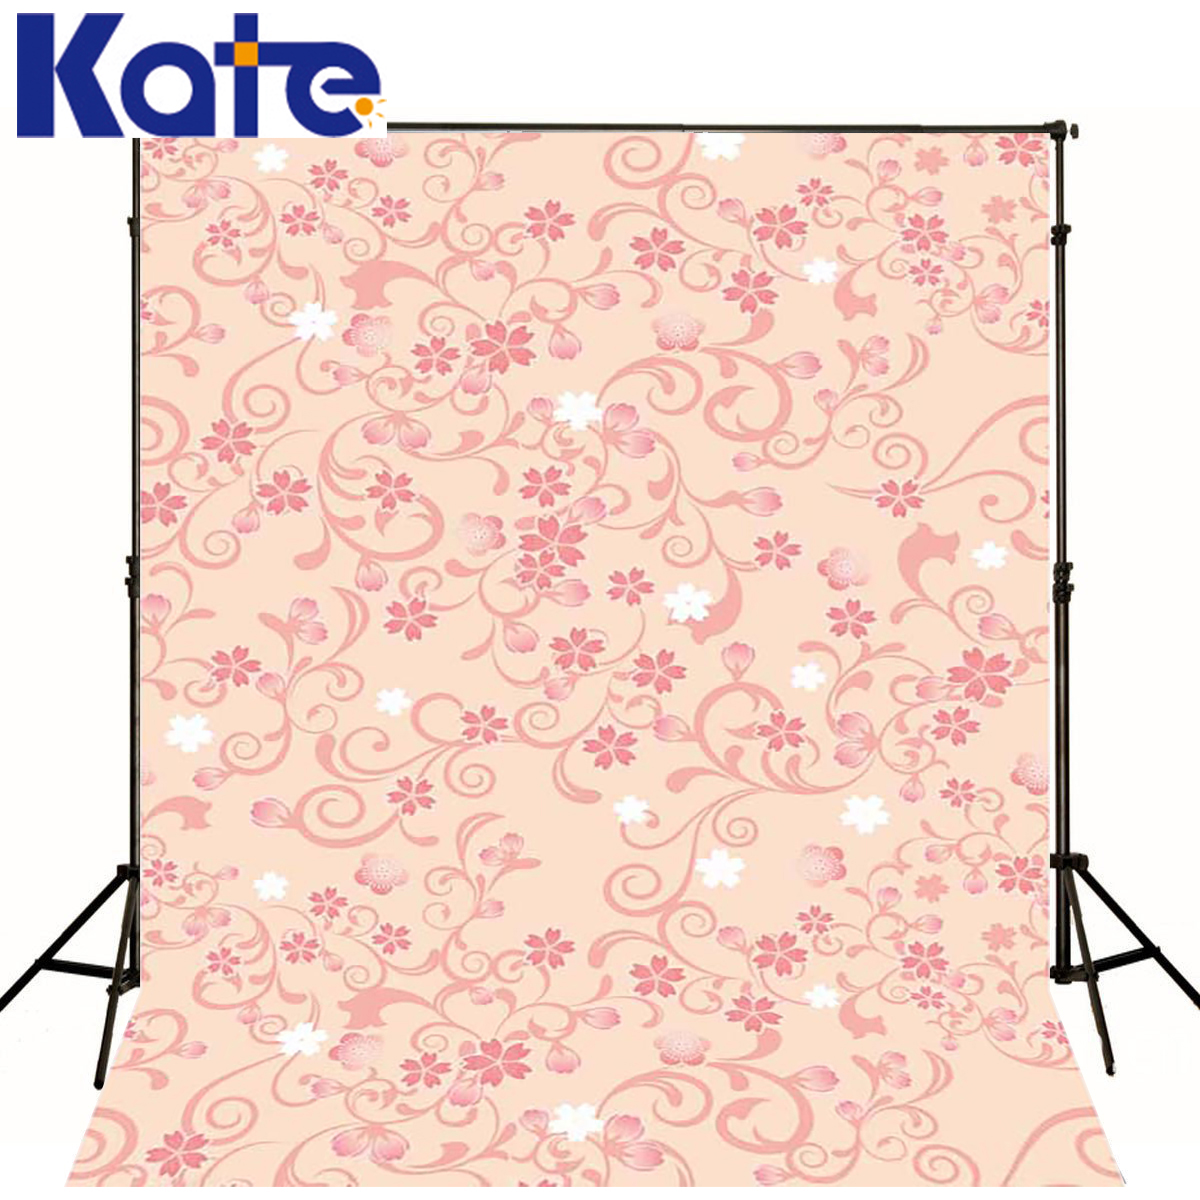 KATE Baby Photo Background Refinement Newborn Photography Backdrops White Pink Flowers Digitally Printed Backdrop сумка kate spade new york wkru2816 kate spade hanna